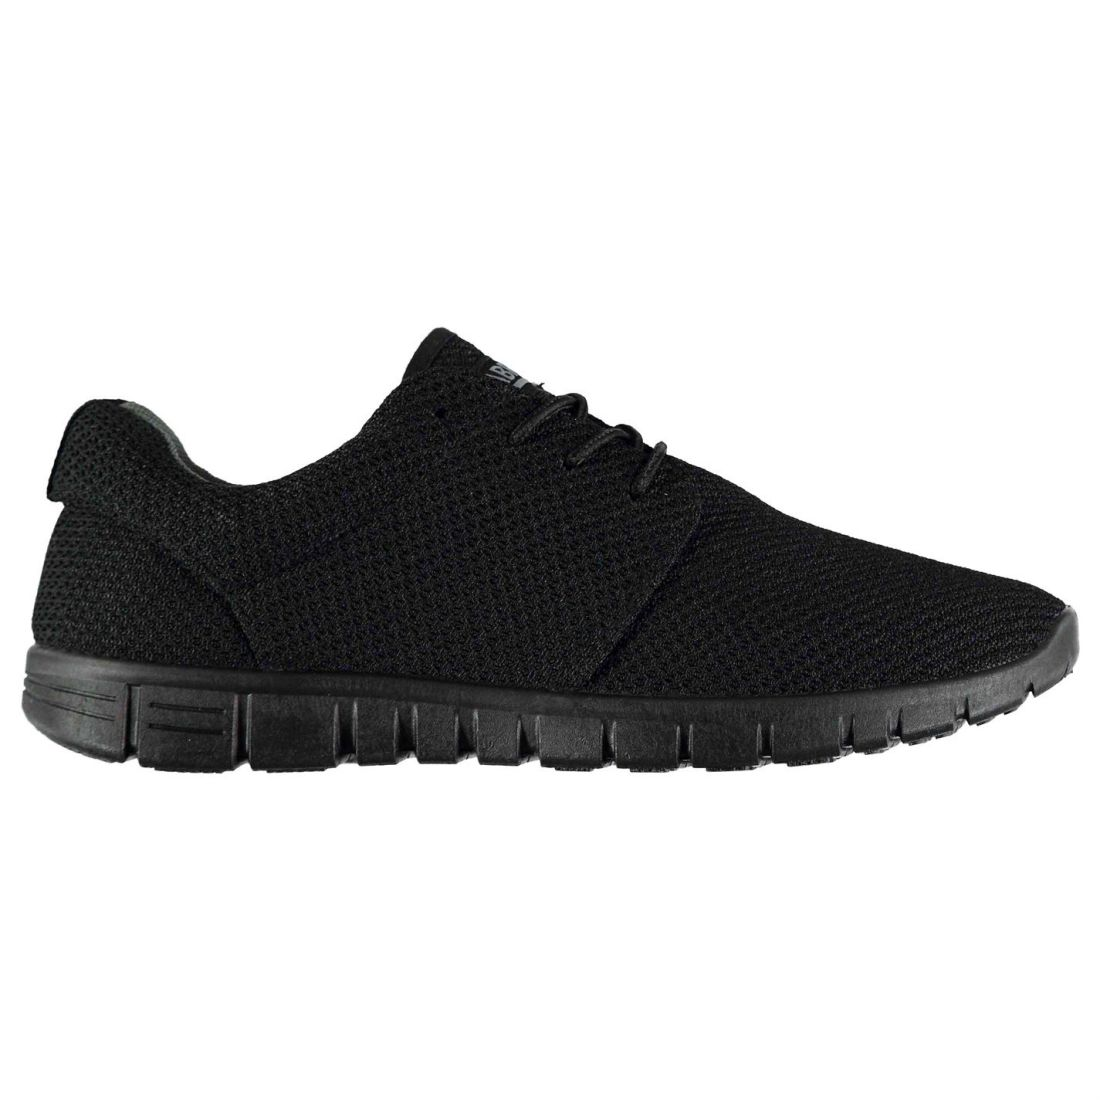 Fabric Womens Mercy Runners Trainers Lace Up Sports Running Cross Training  Shoes a951d2e5f